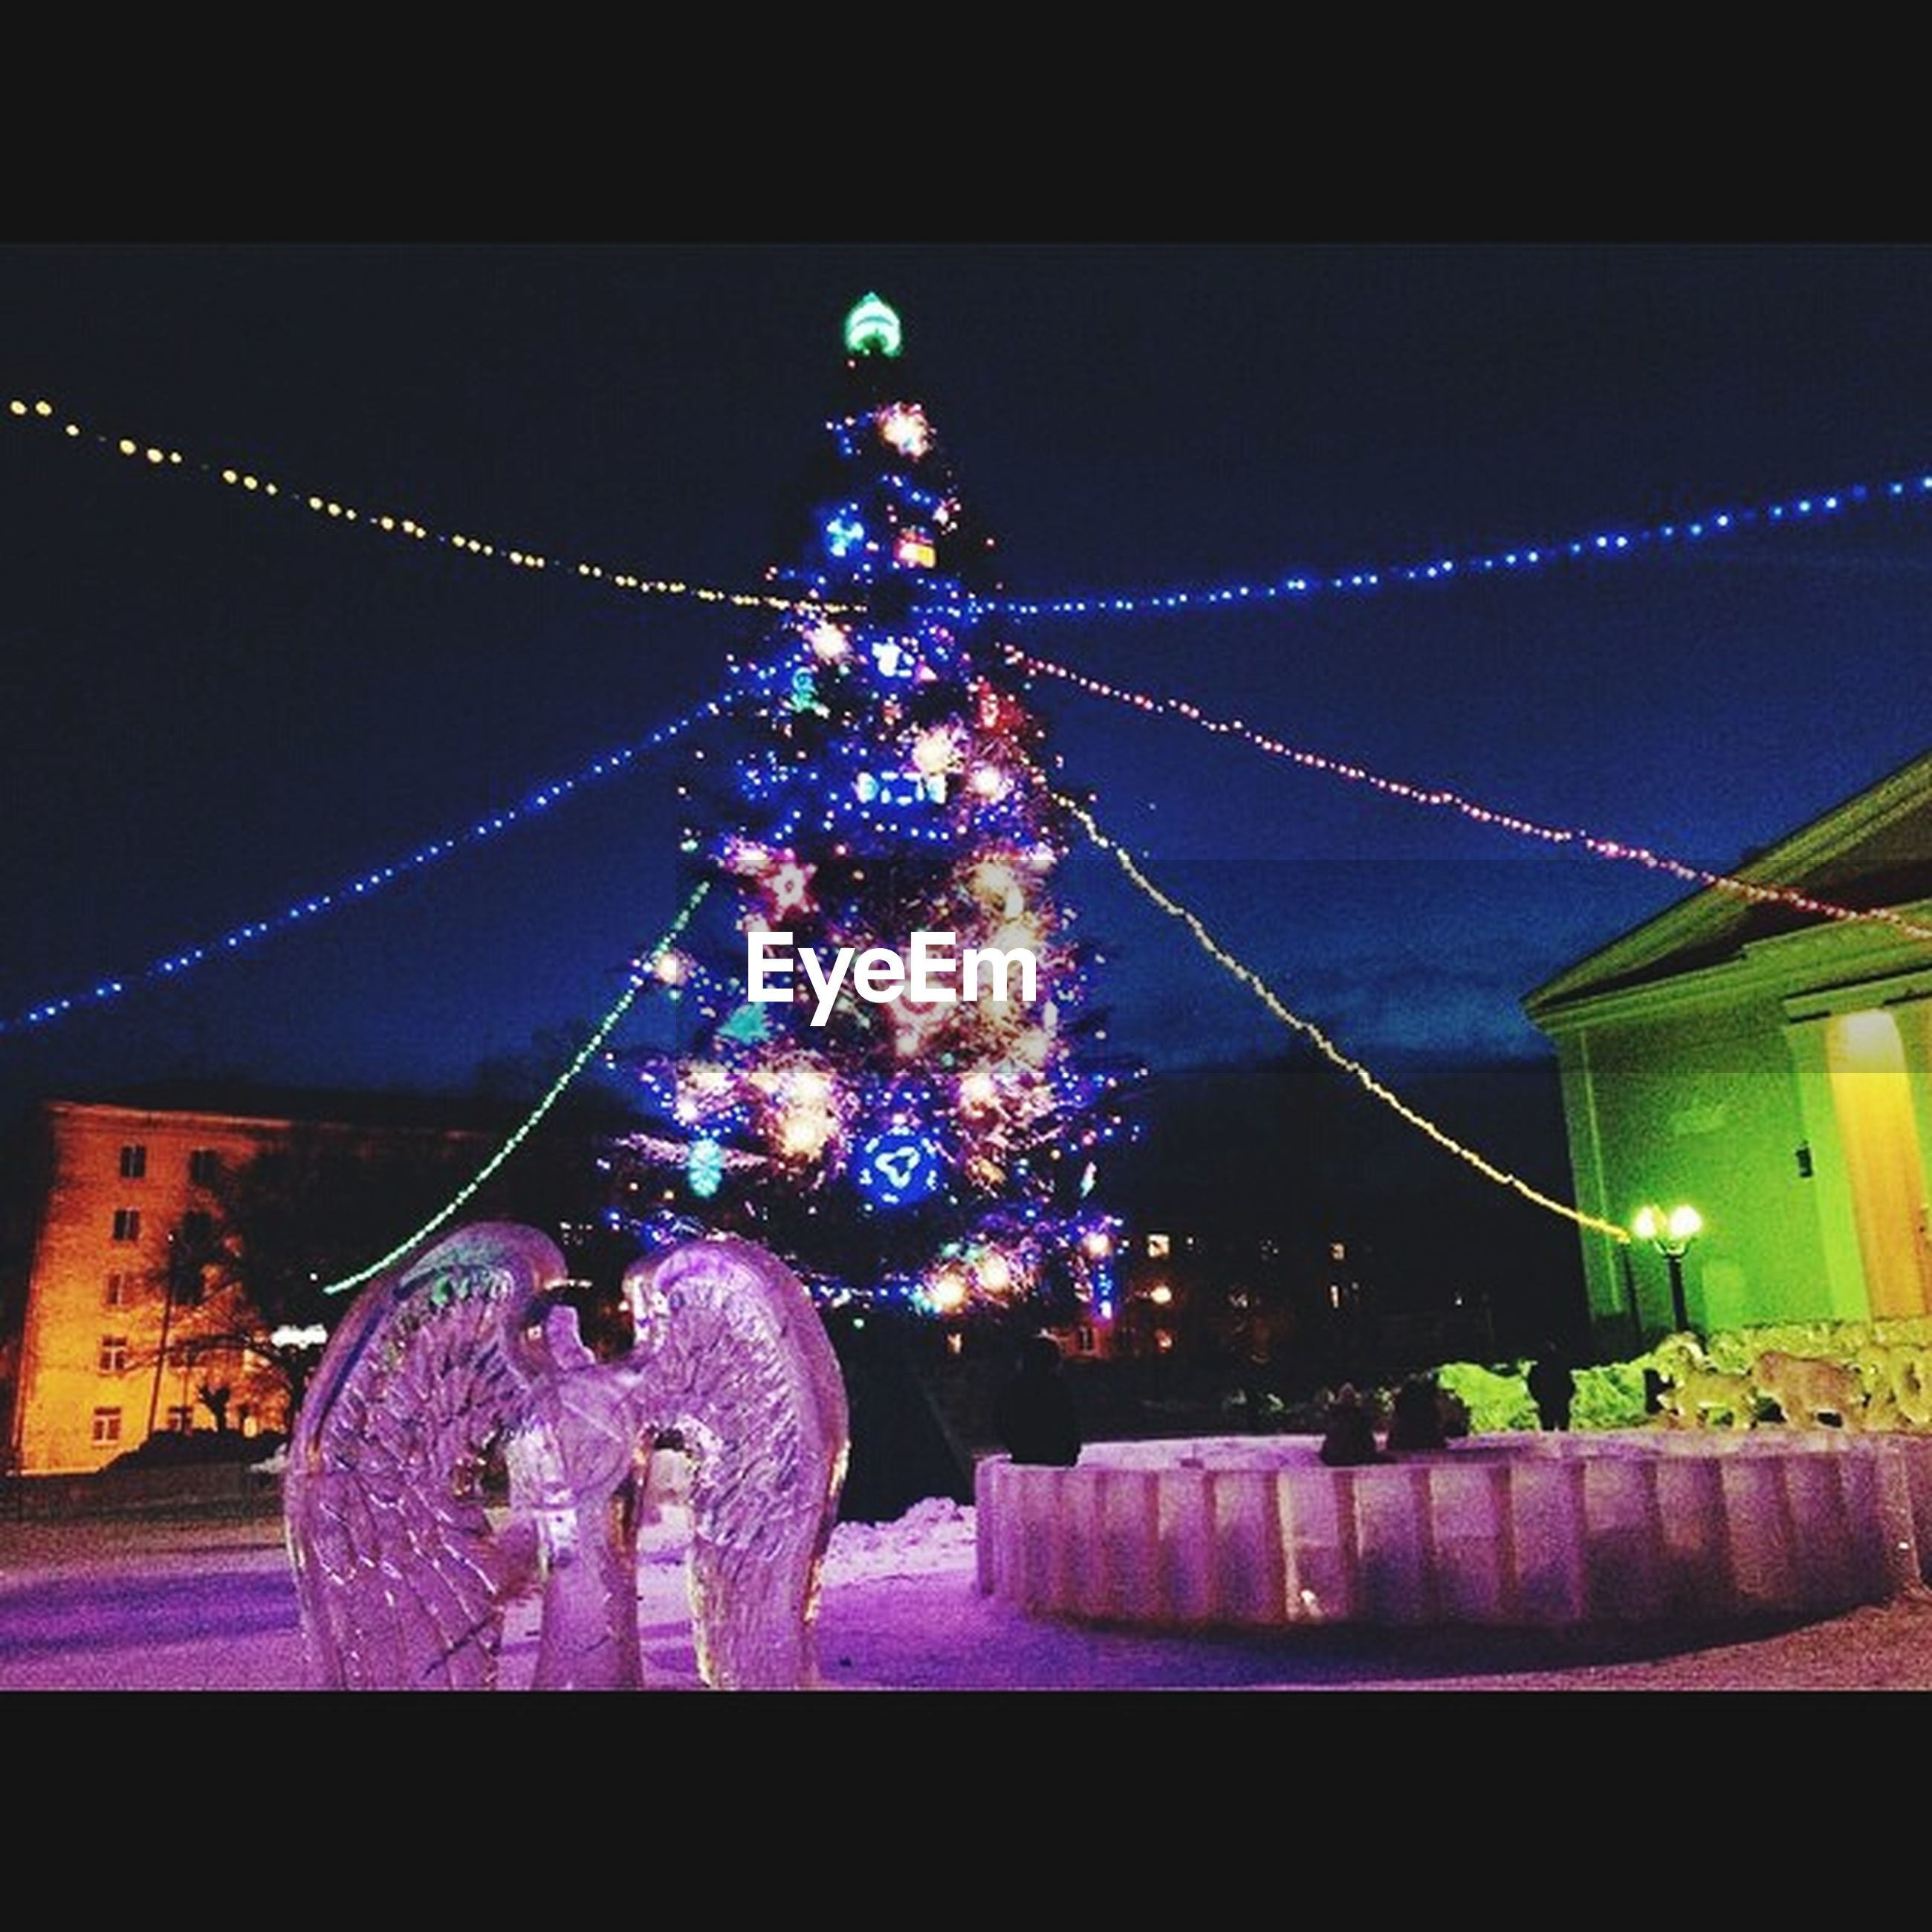 illuminated, night, decoration, celebration, low angle view, lighting equipment, christmas decoration, christmas lights, christmas, multi colored, architecture, hanging, built structure, christmas tree, building exterior, tradition, decor, arts culture and entertainment, amusement park, glowing